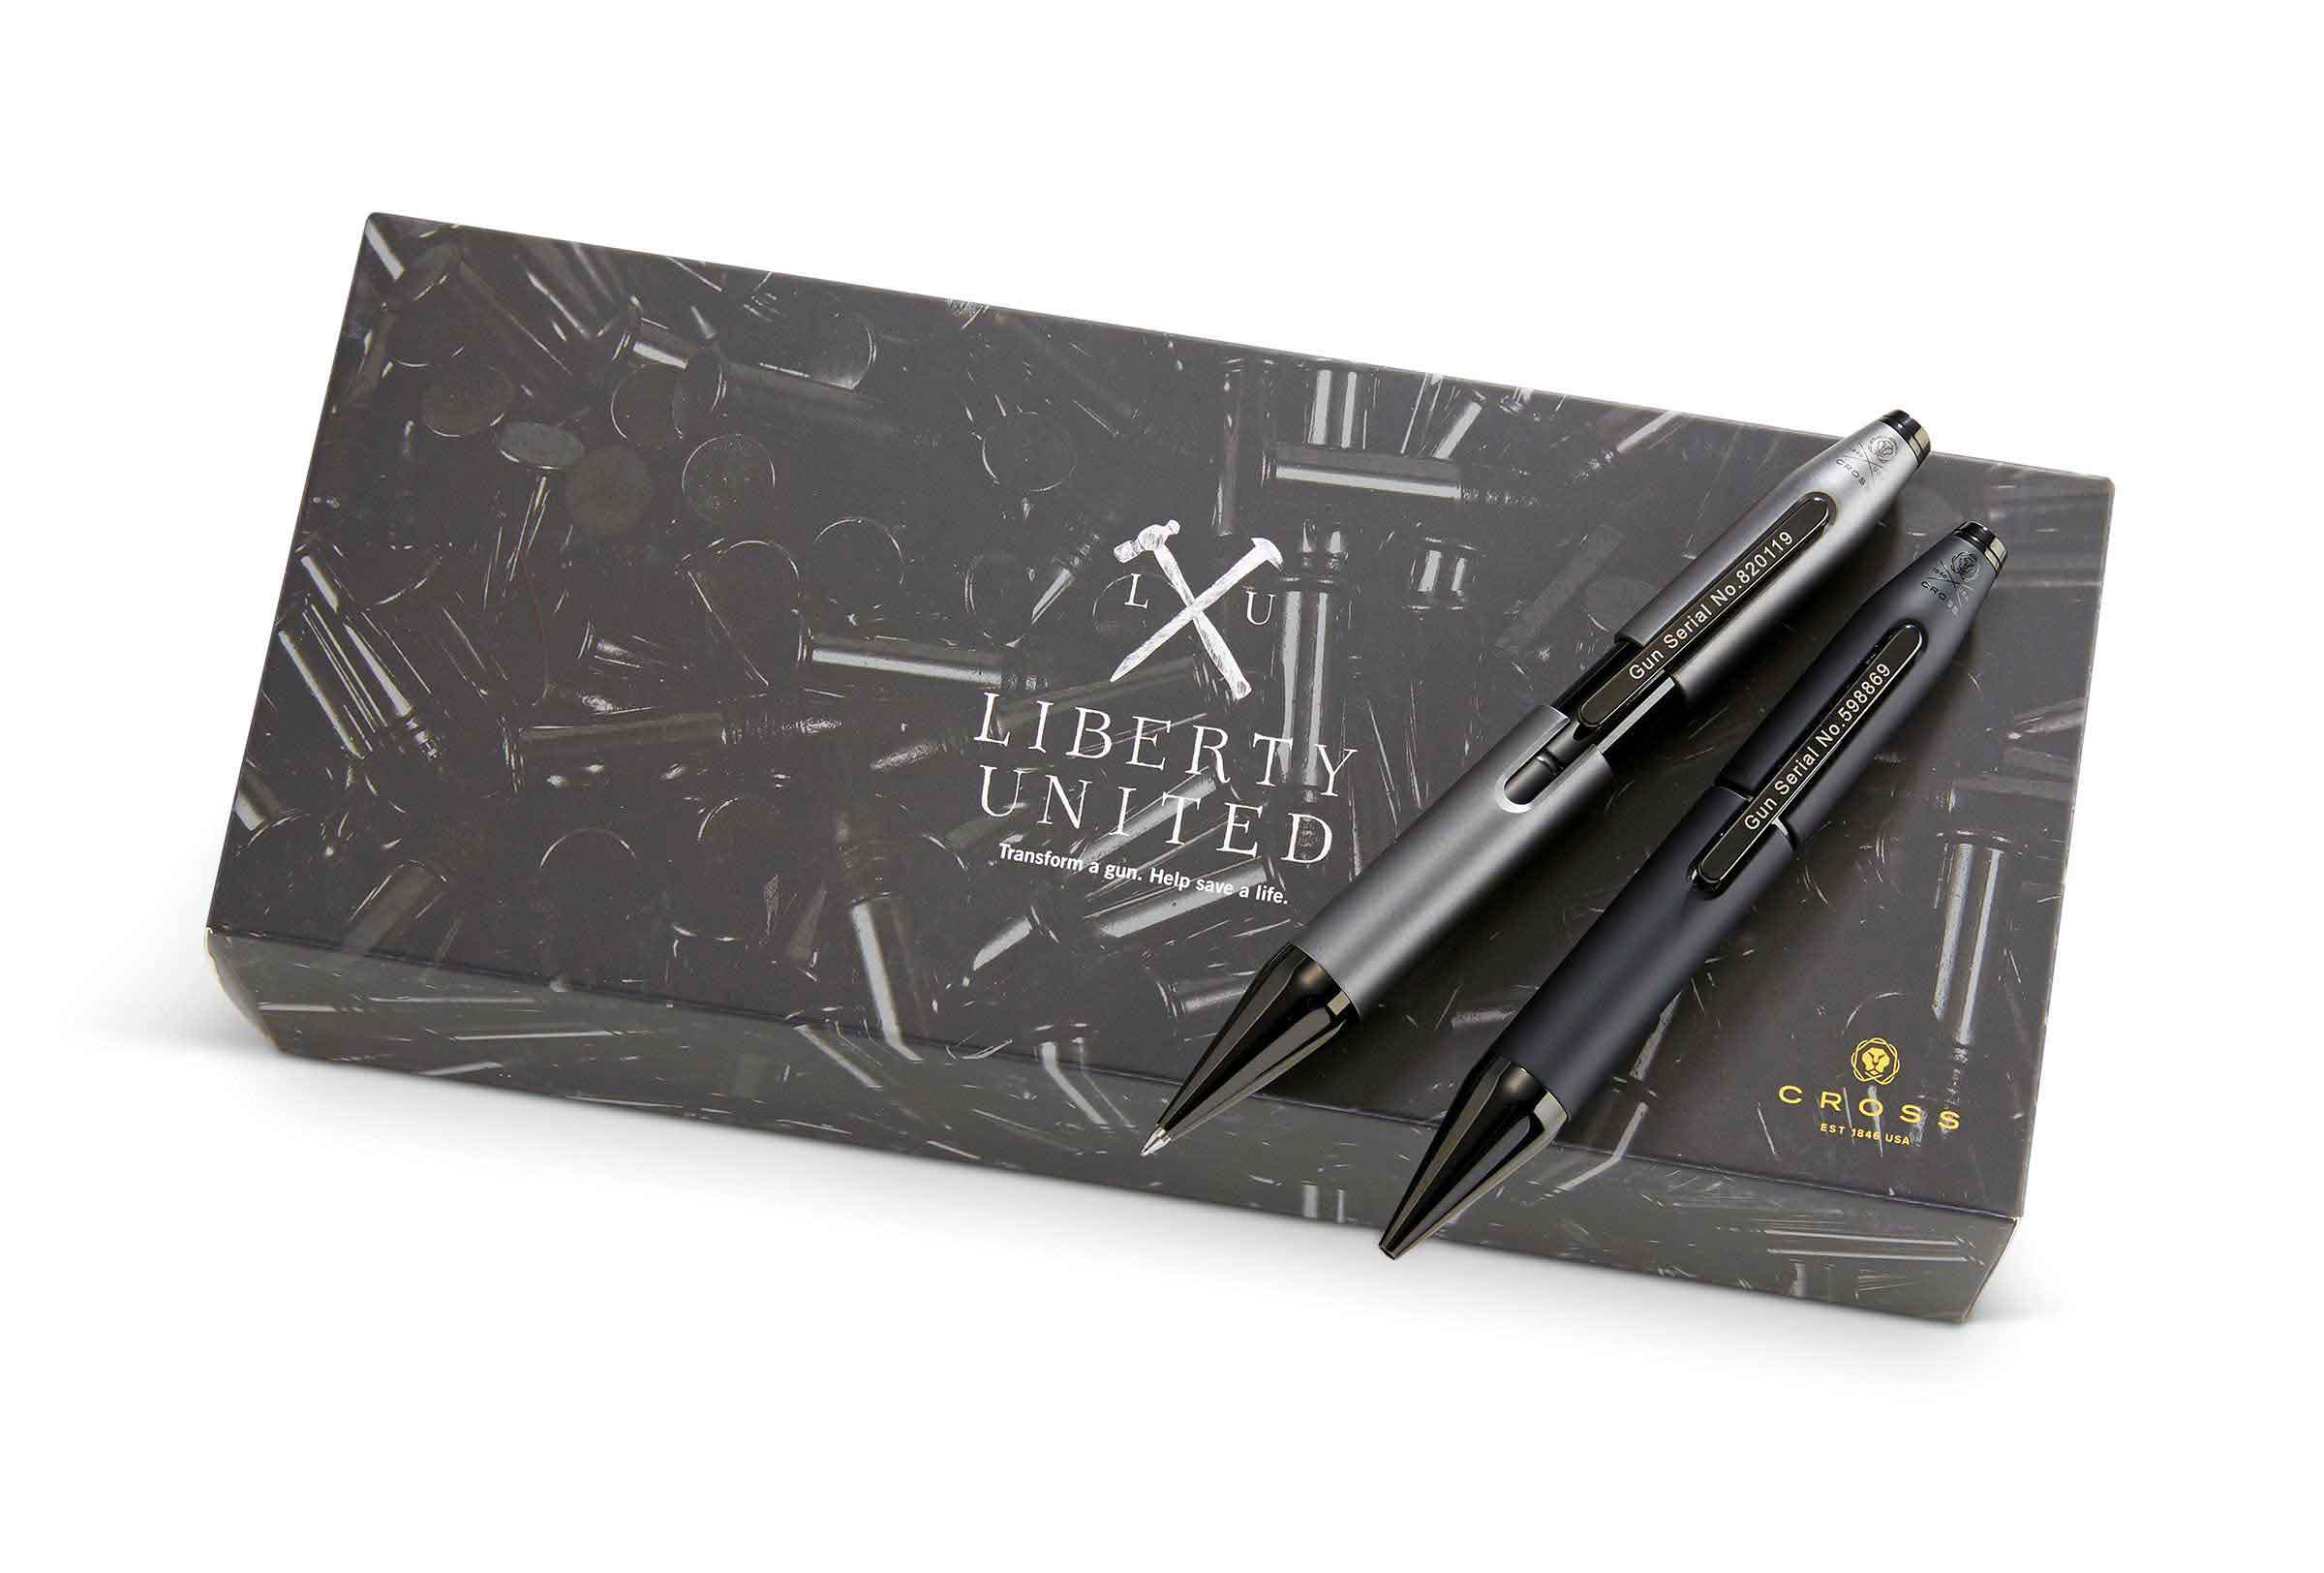 Cross X Liberty United Collector's Edition Capless Rollerball